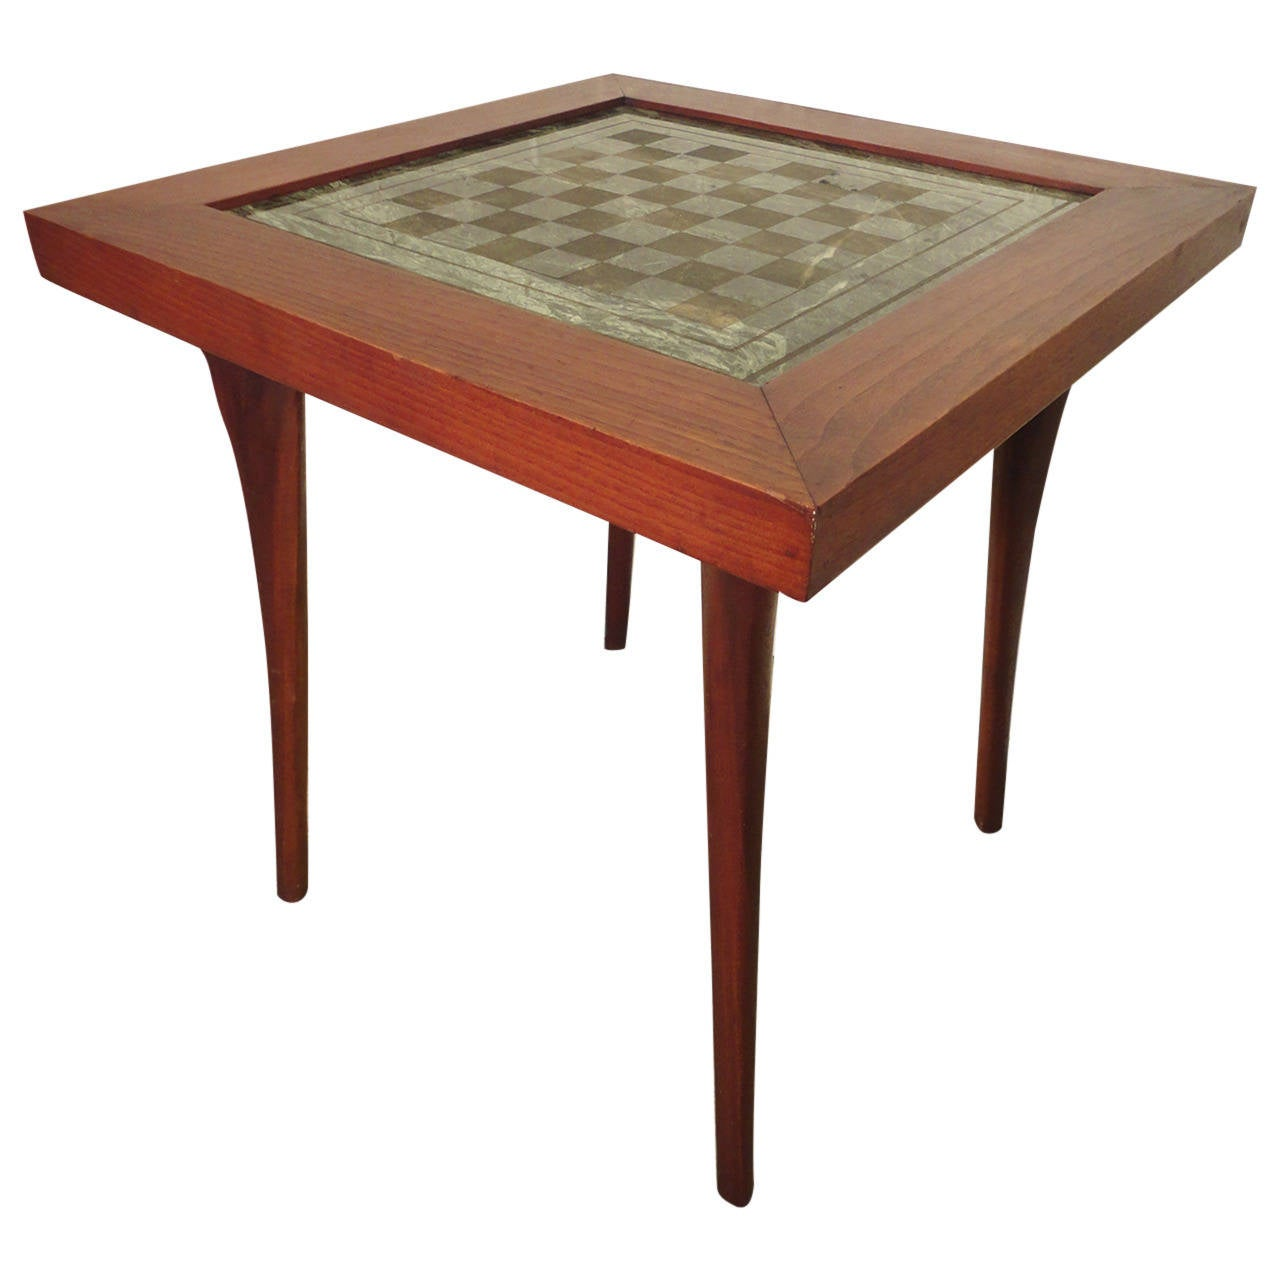 Well Designed Mid Century Chess Table At 1stdibs